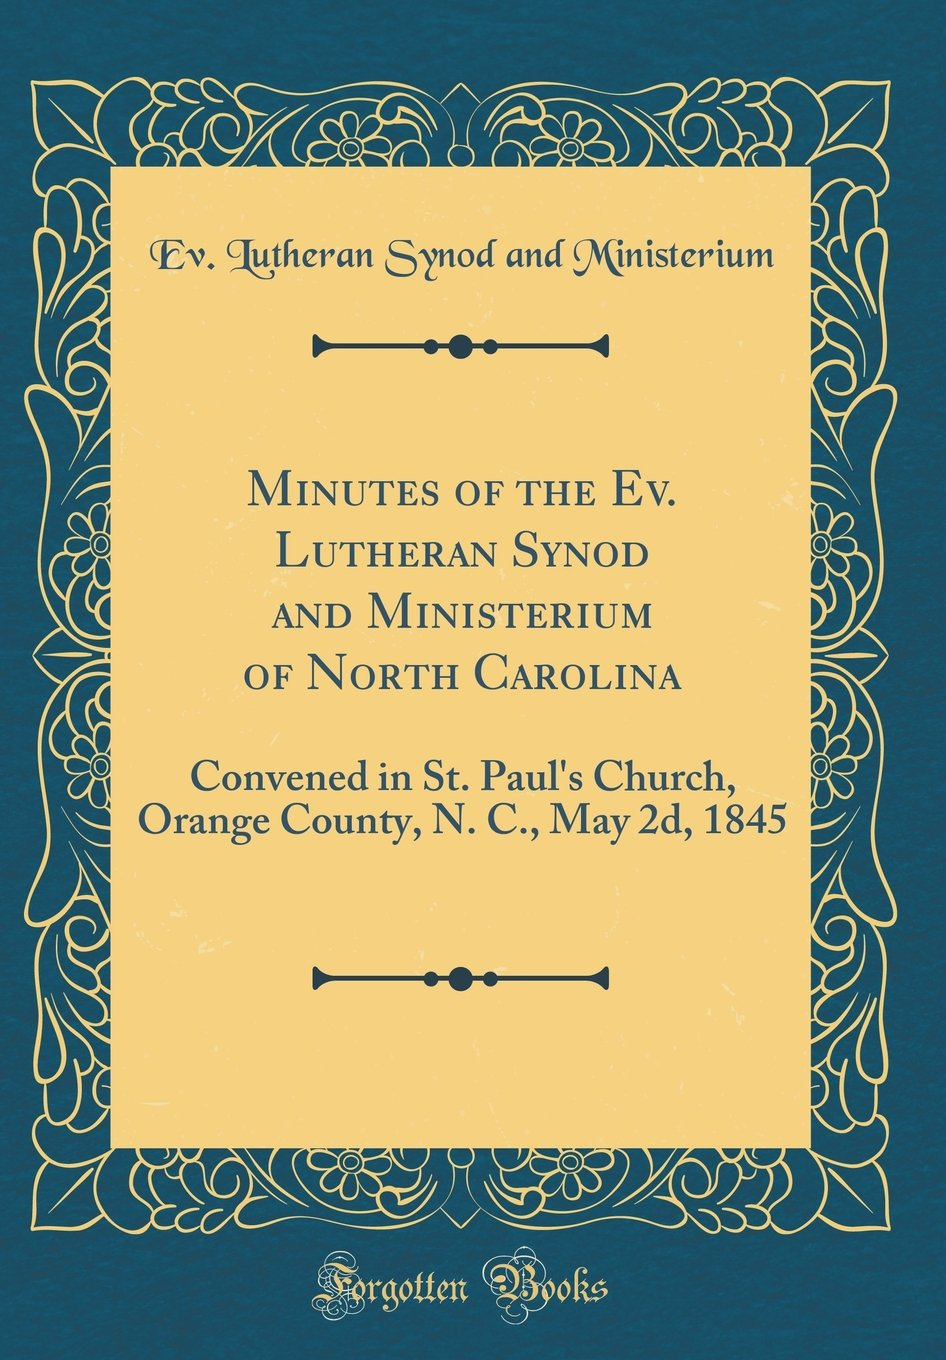 Minutes of the Ev. Lutheran Synod and Ministerium of North Carolina: Convened in St. Paul's Church, Orange County, N. C., May 2d, 1845 (Classic Reprint) pdf